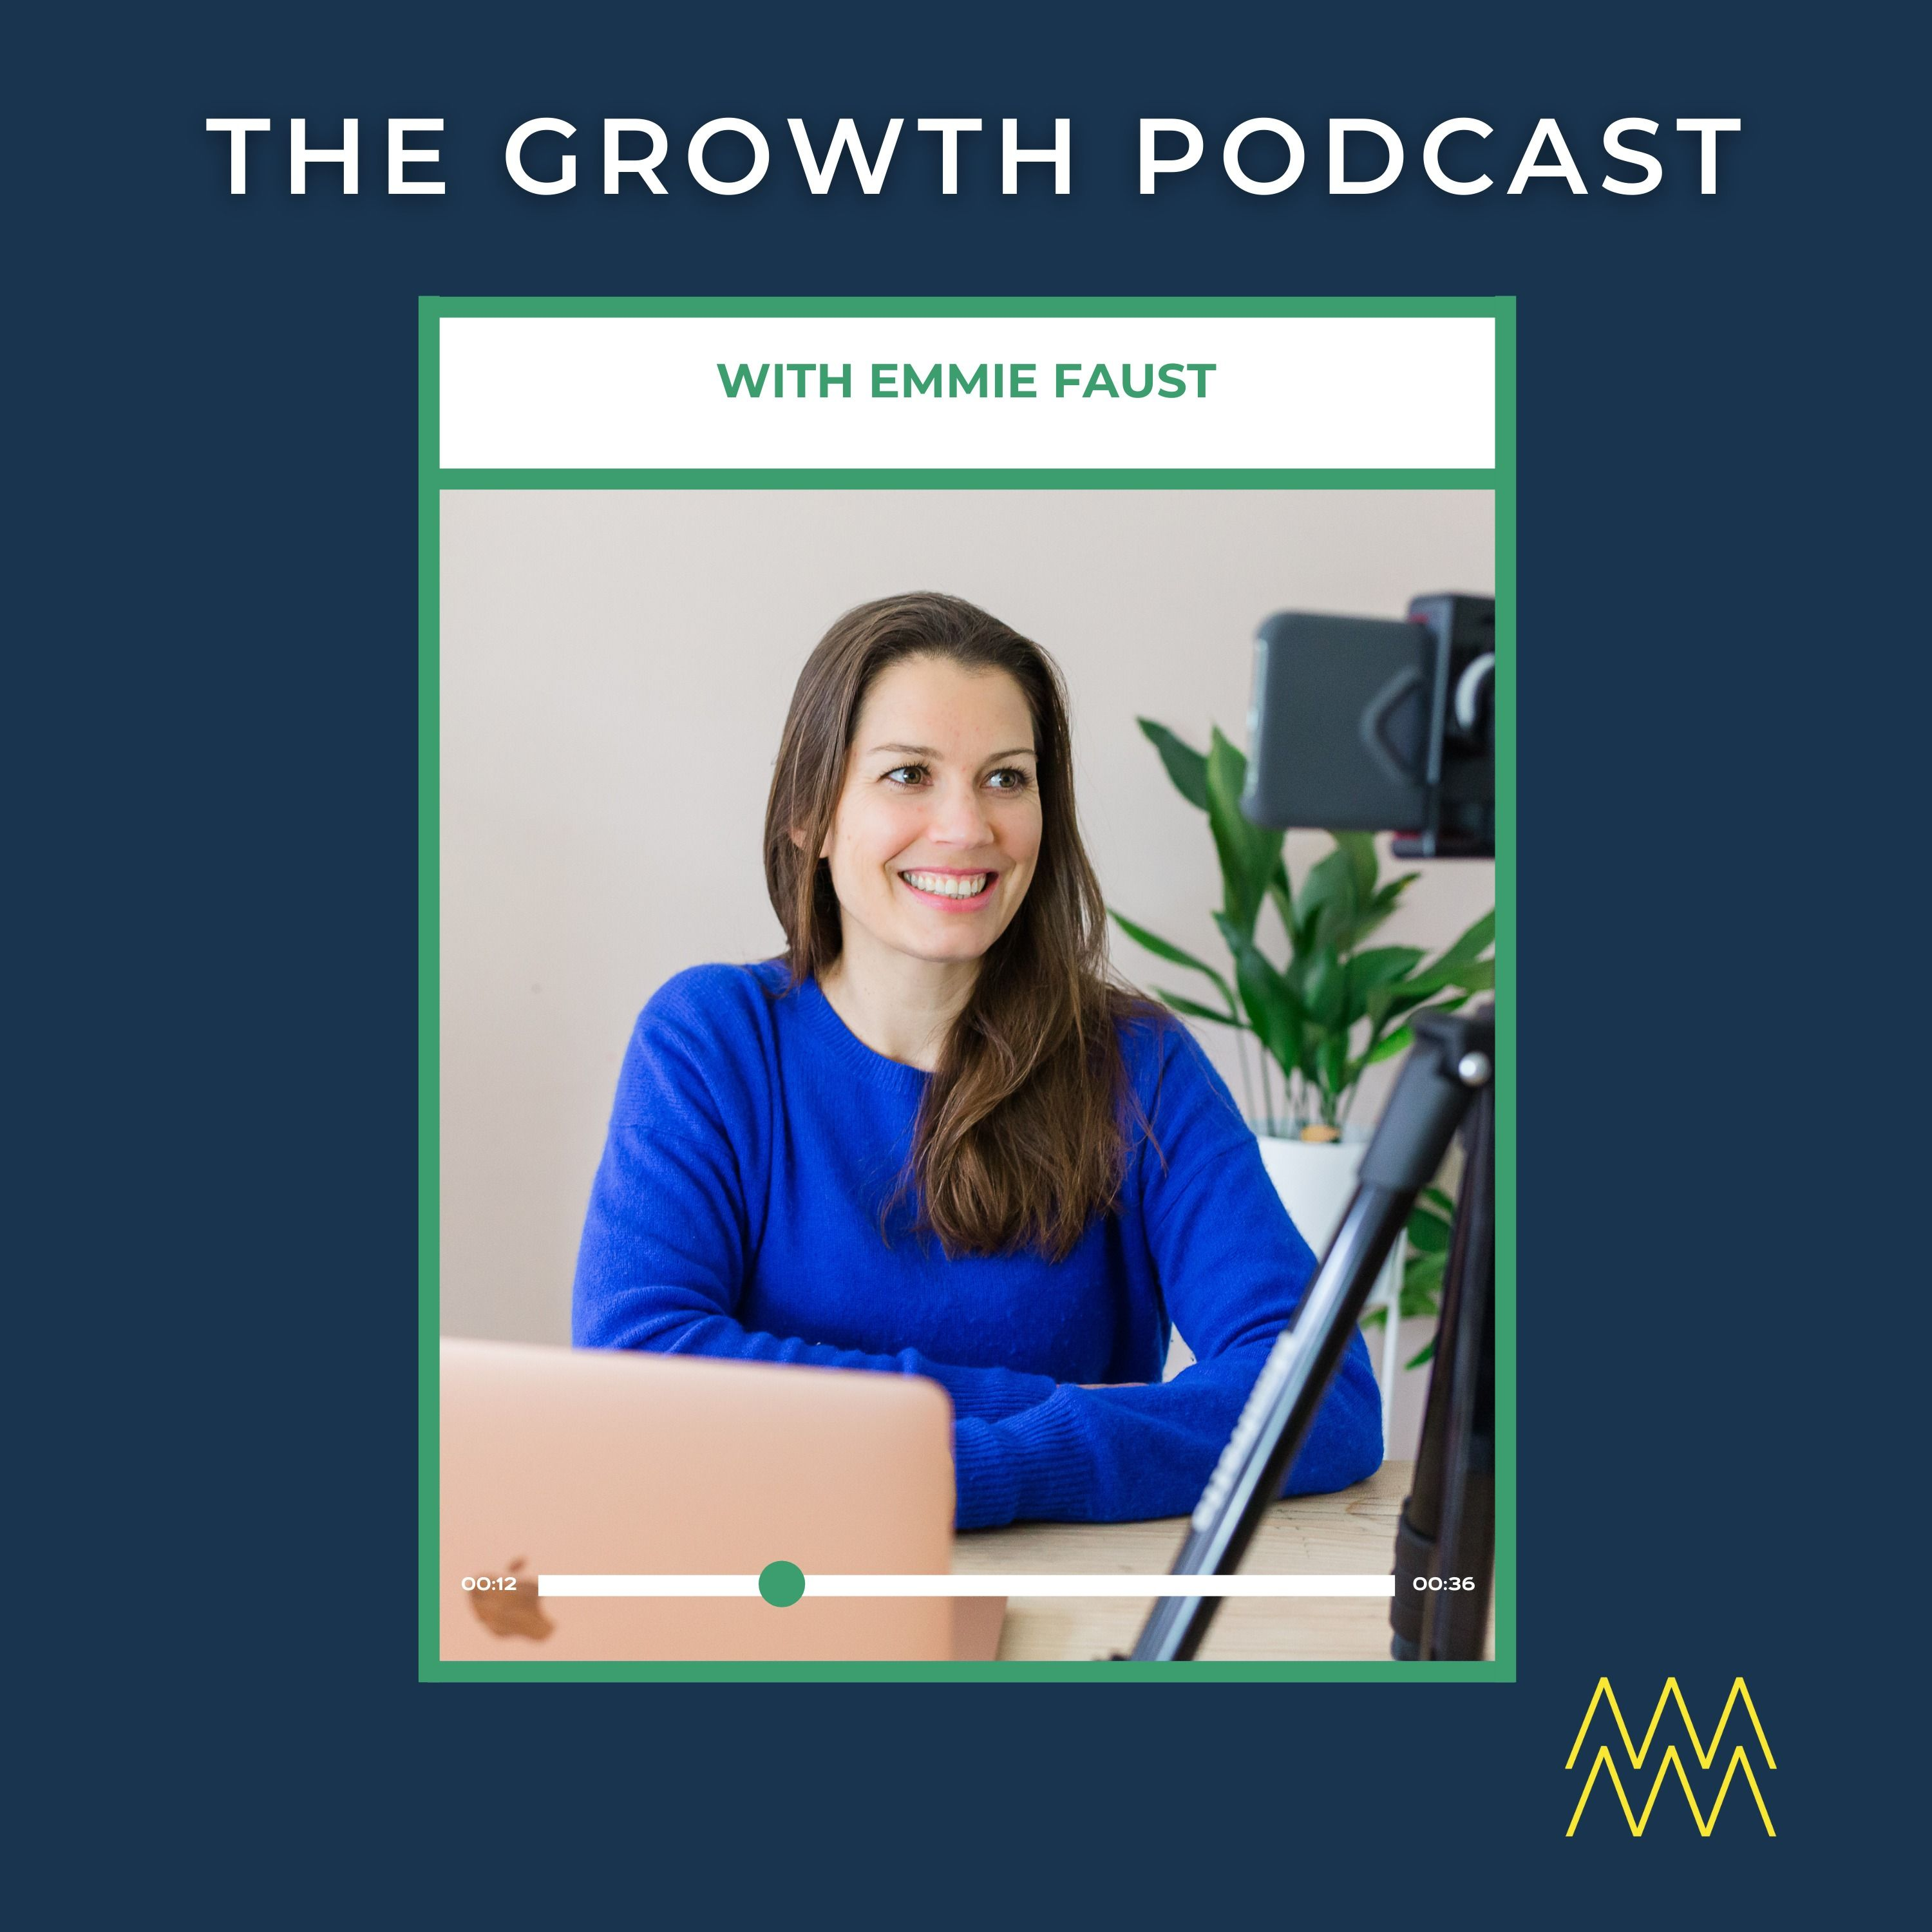 Growth Podcast with Emmie Faust